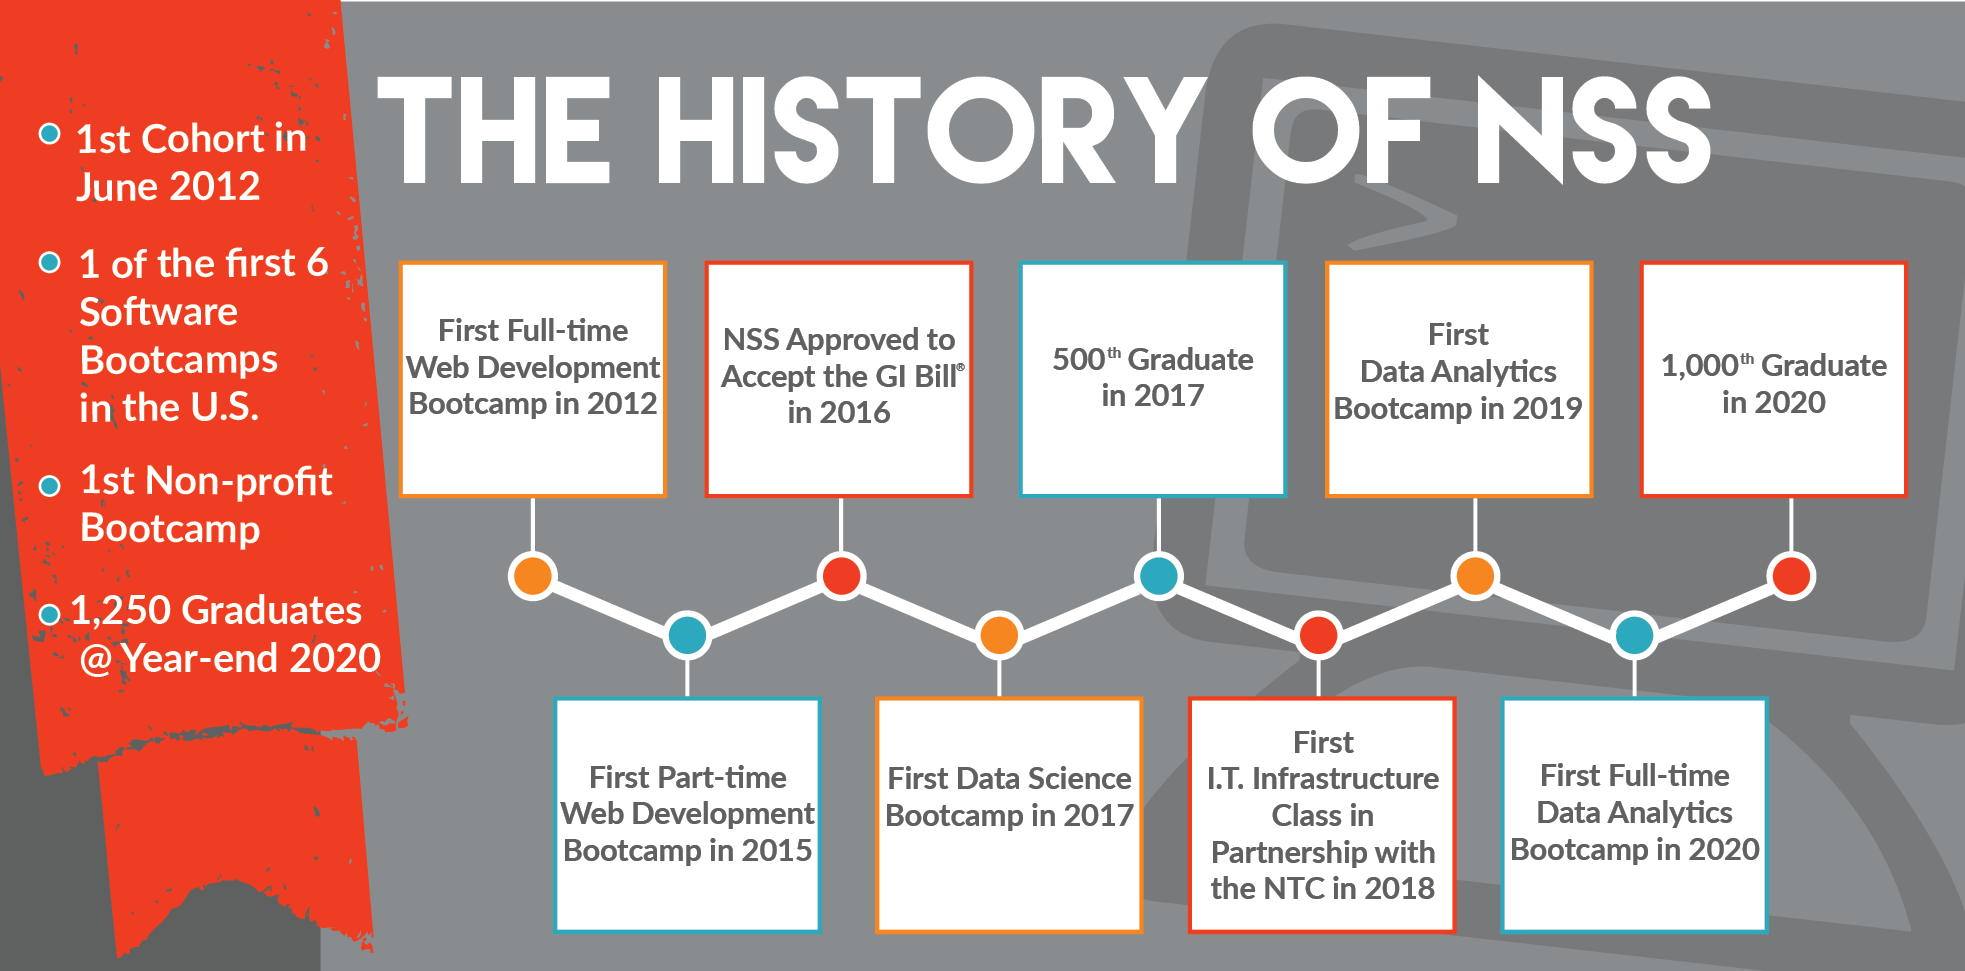 The History of NSS - a back at 8 years of milestones